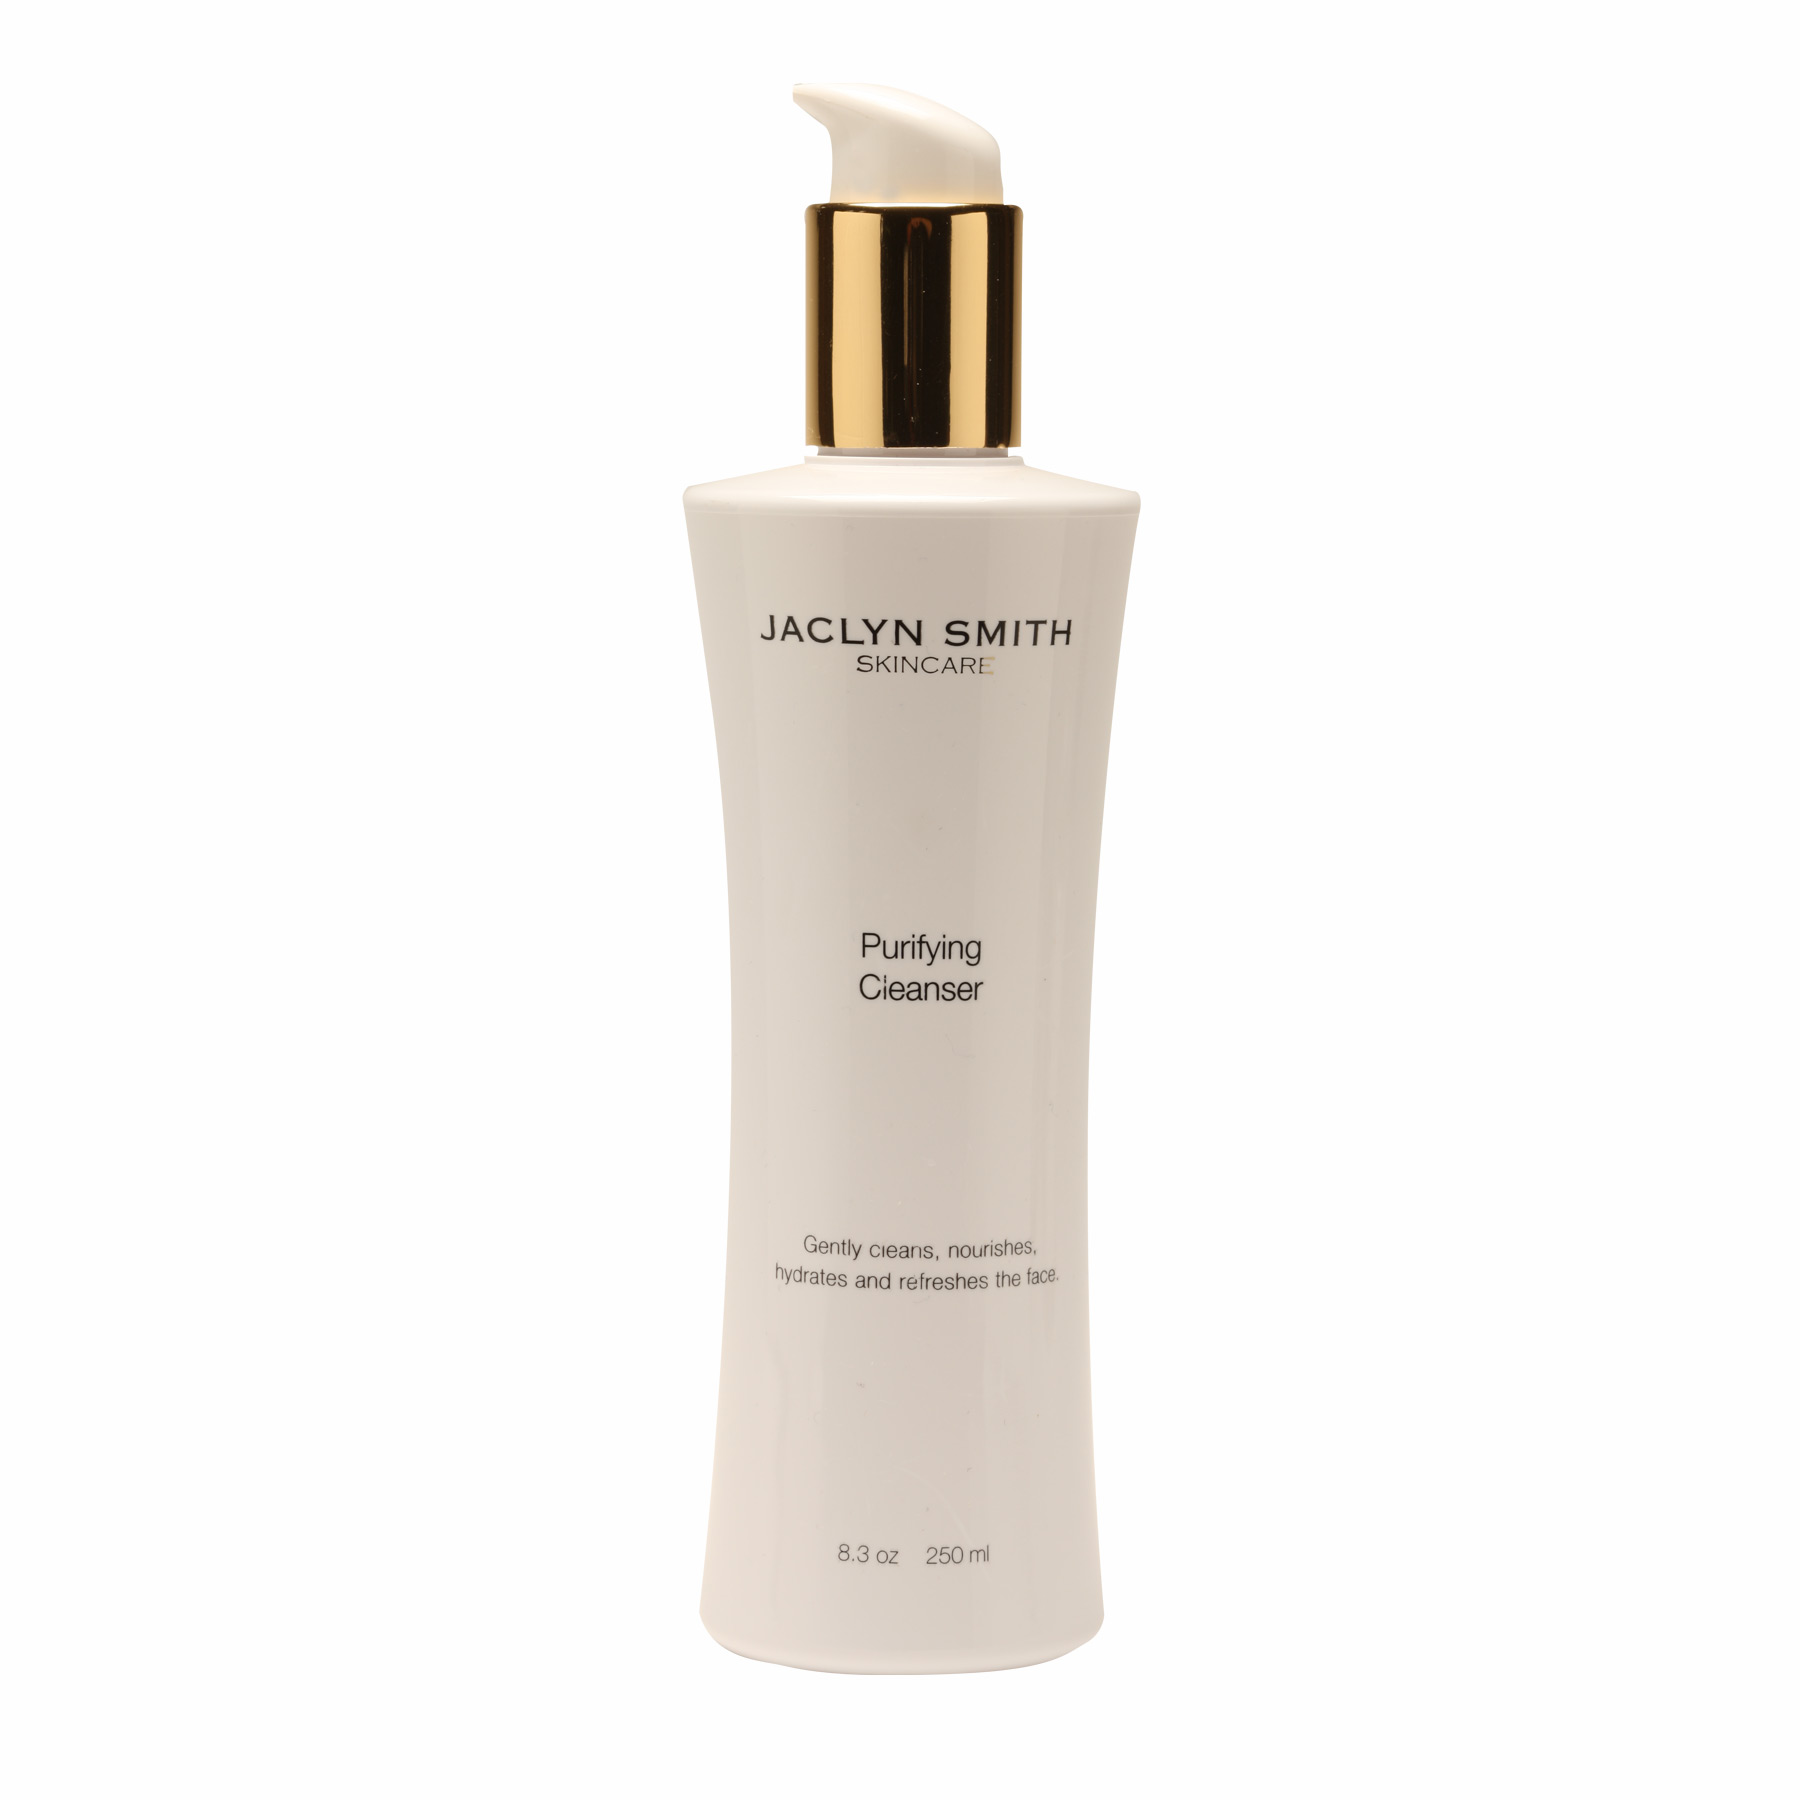 Jaclyn Smith Beauty Purifying Cleanser